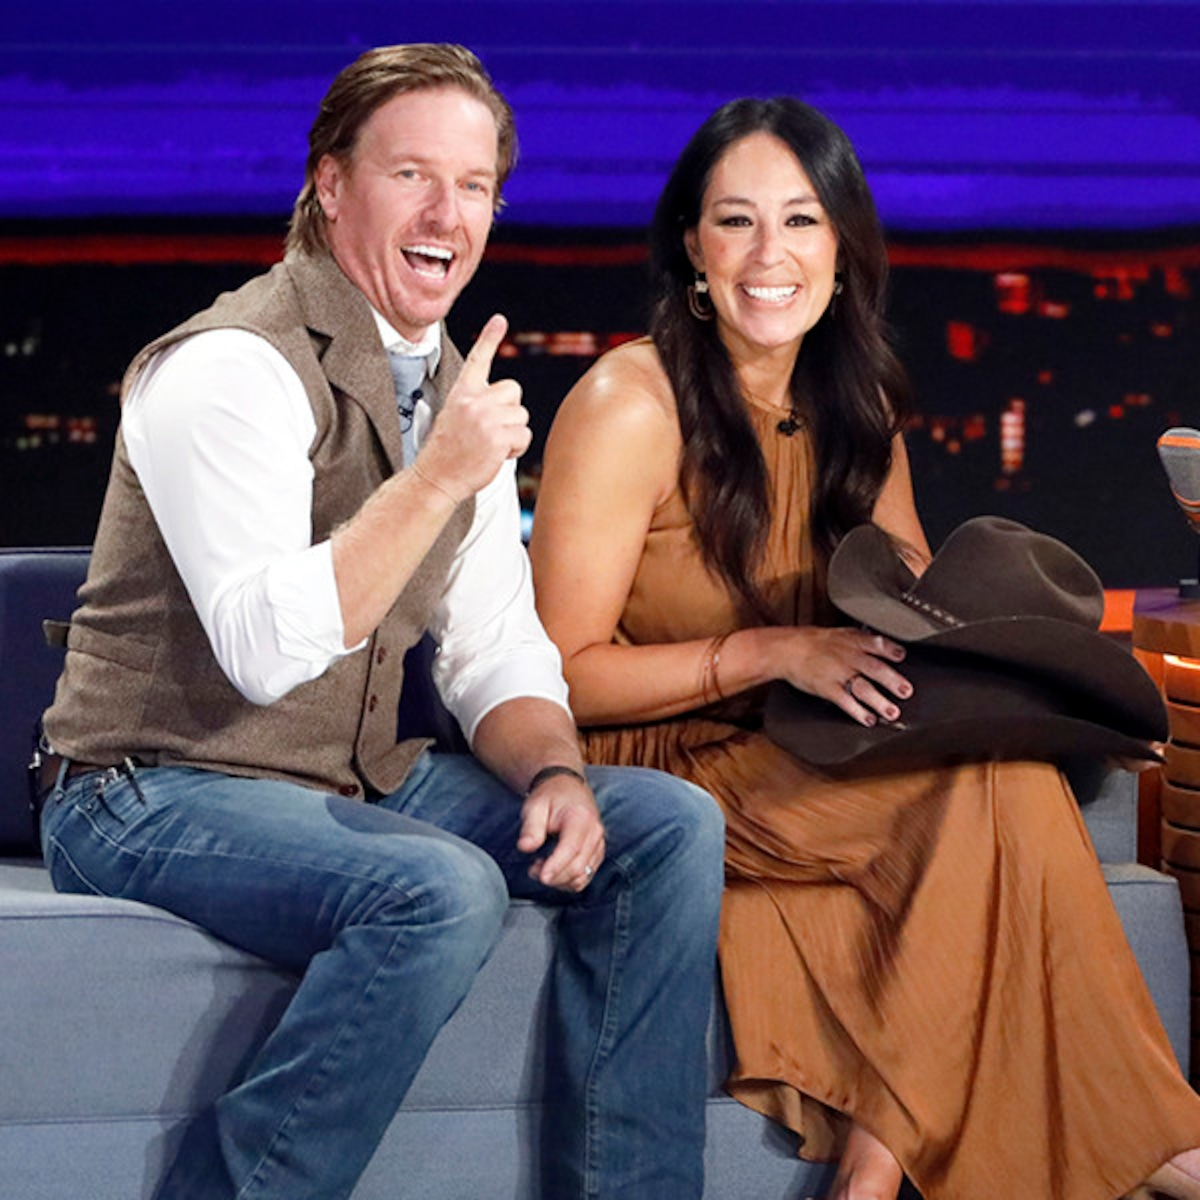 Chips Et Joanna Gaines why 2020 is shaping up to be chip and joanna gaines' biggest